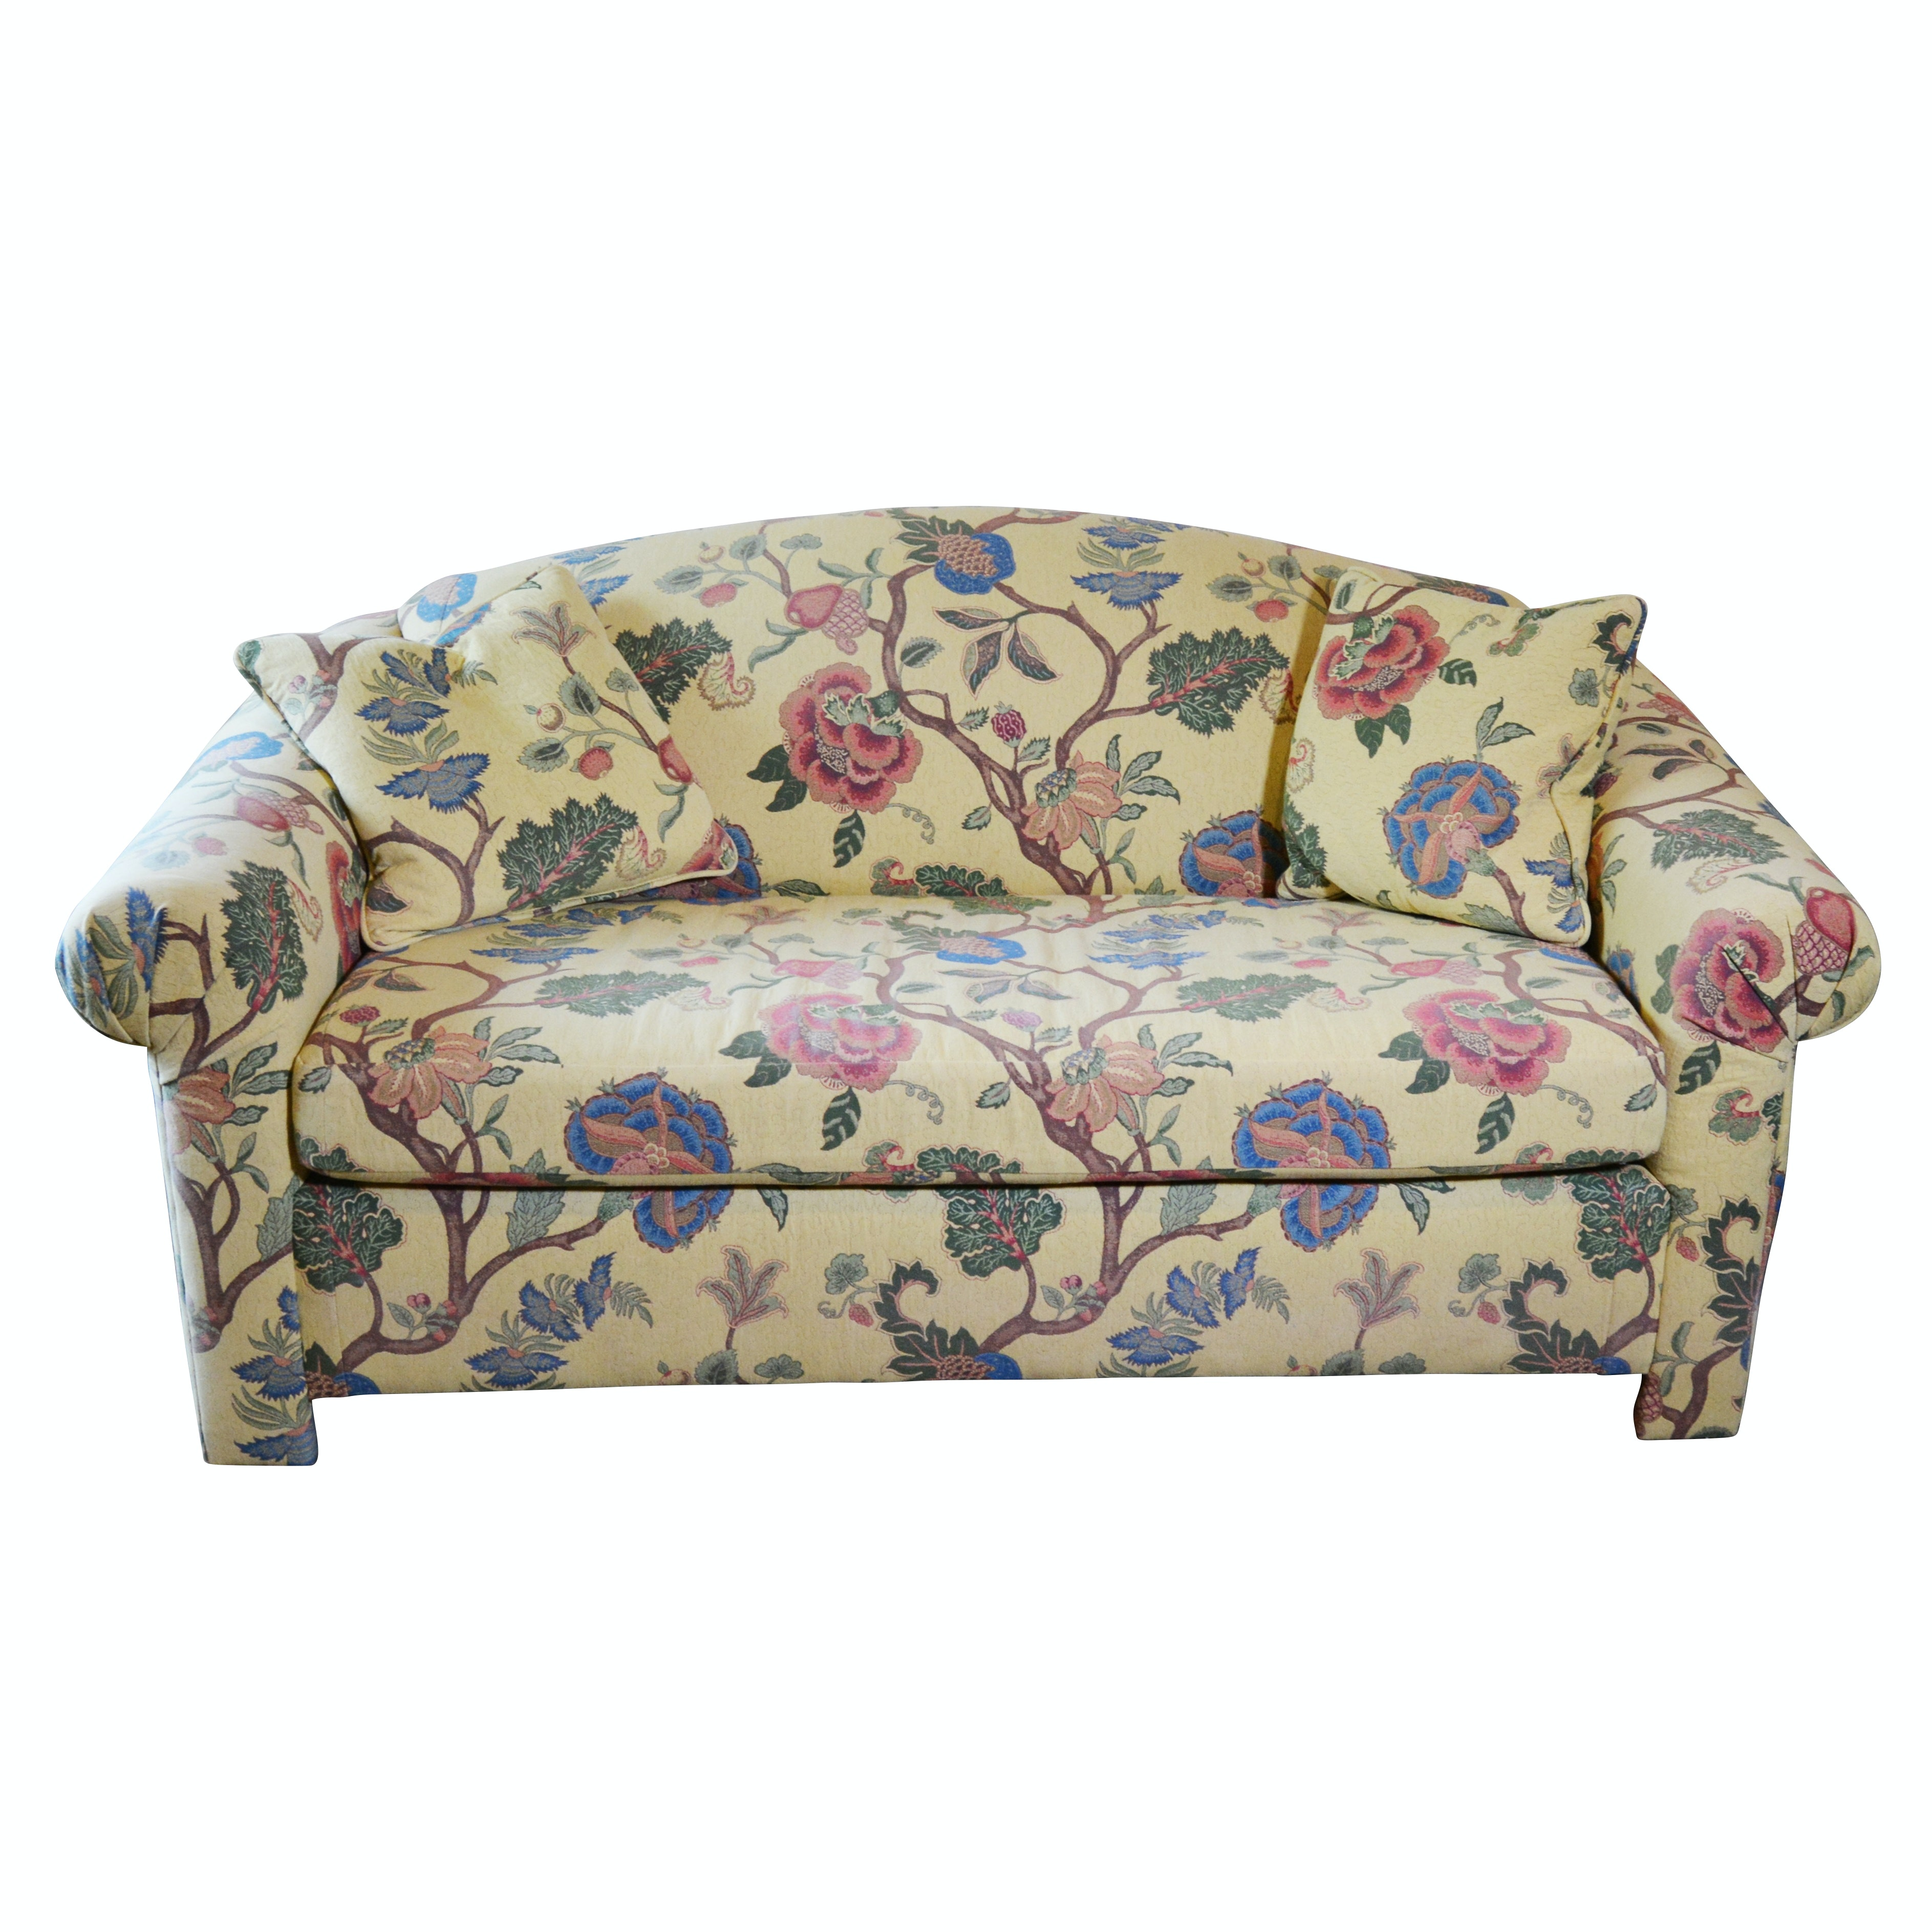 Craftwork Guild Large Floral Upholstered Sleeper Sofa, Late 20th Century